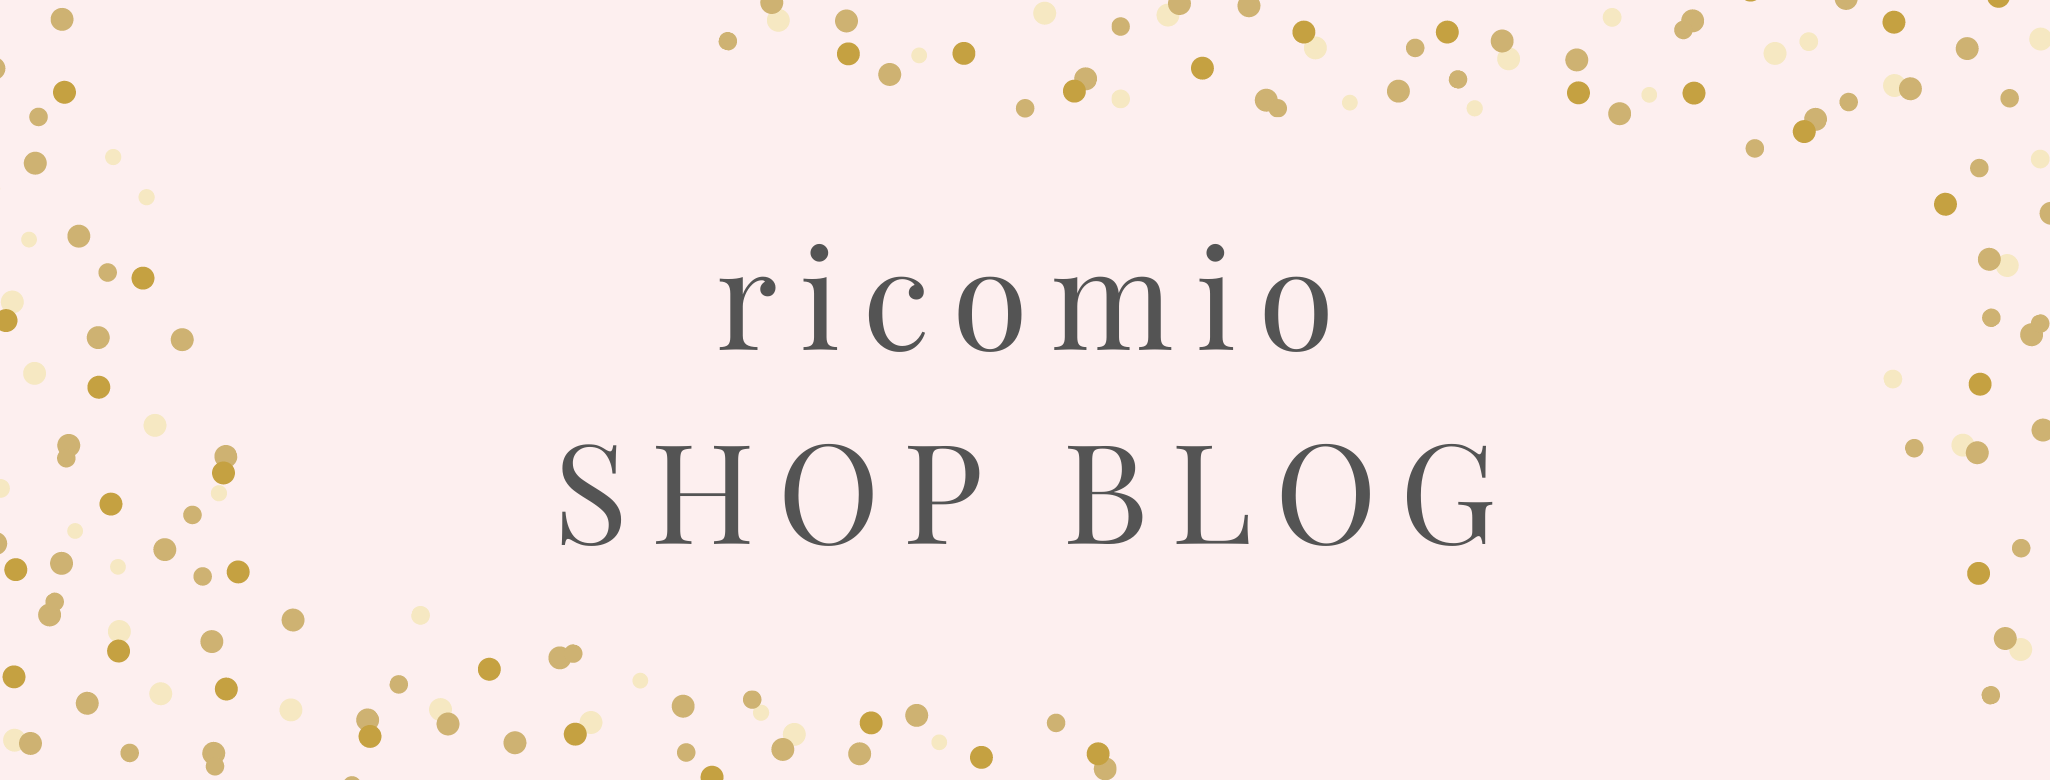 ricomio  SHOP BLOG